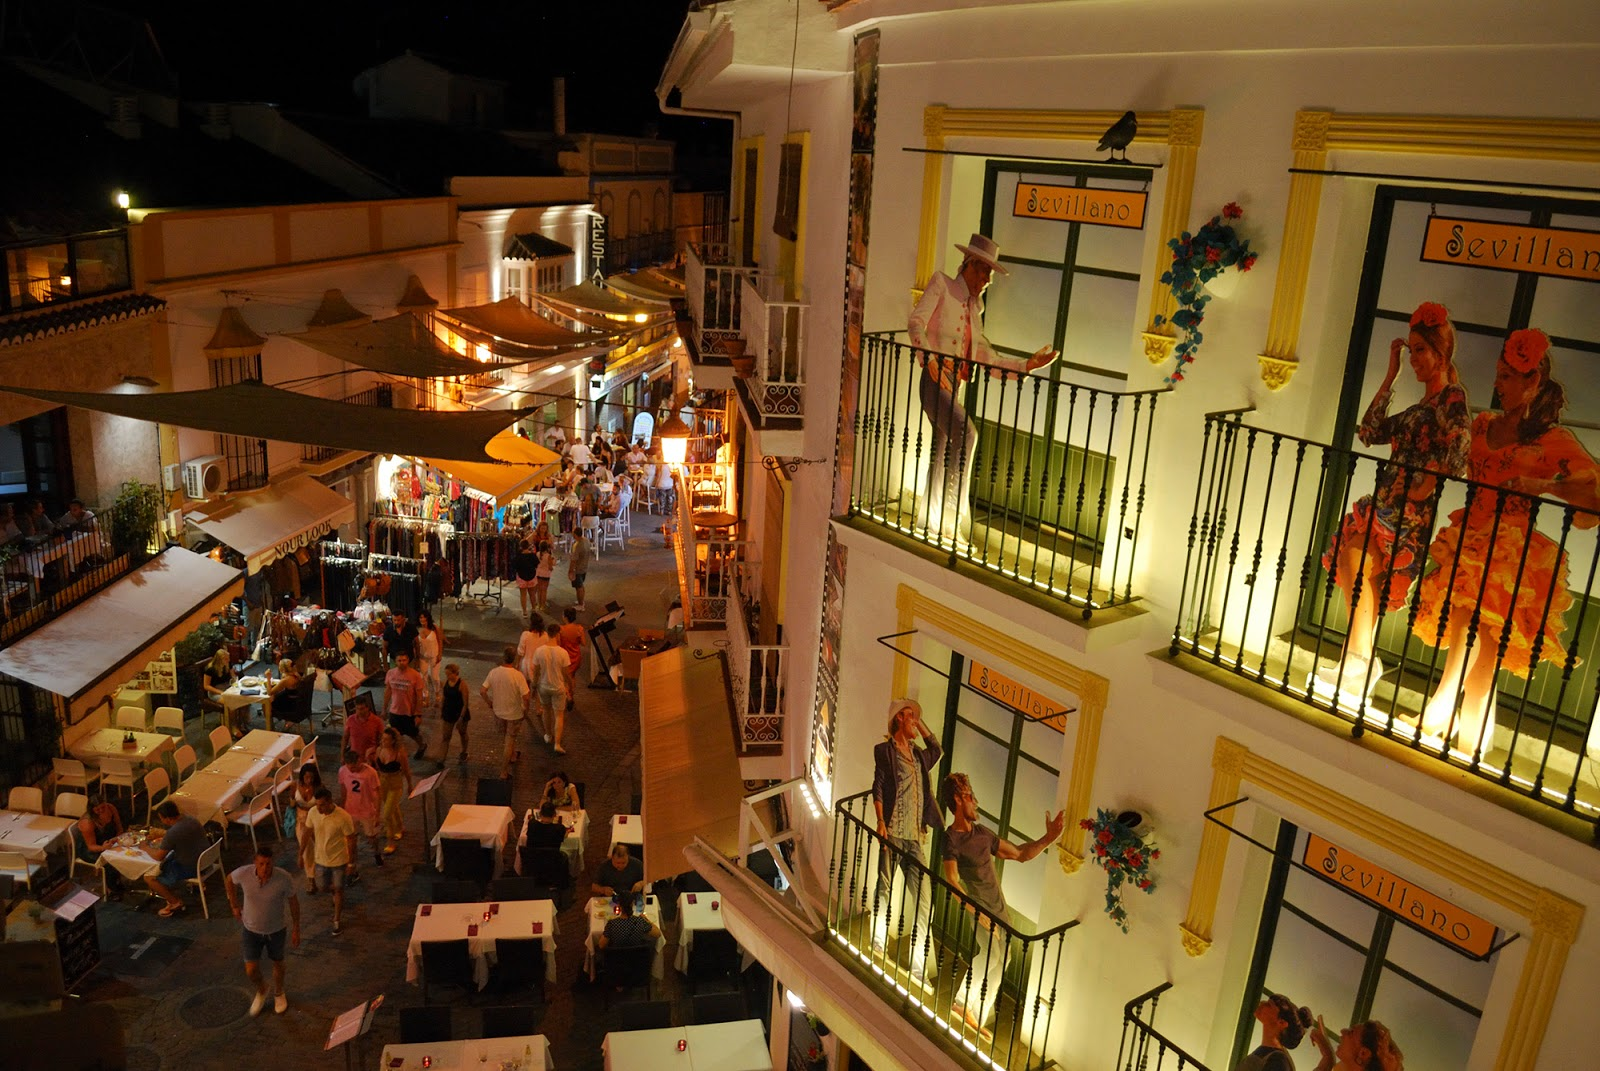 sevillano restaurant old town nerja spain malaga